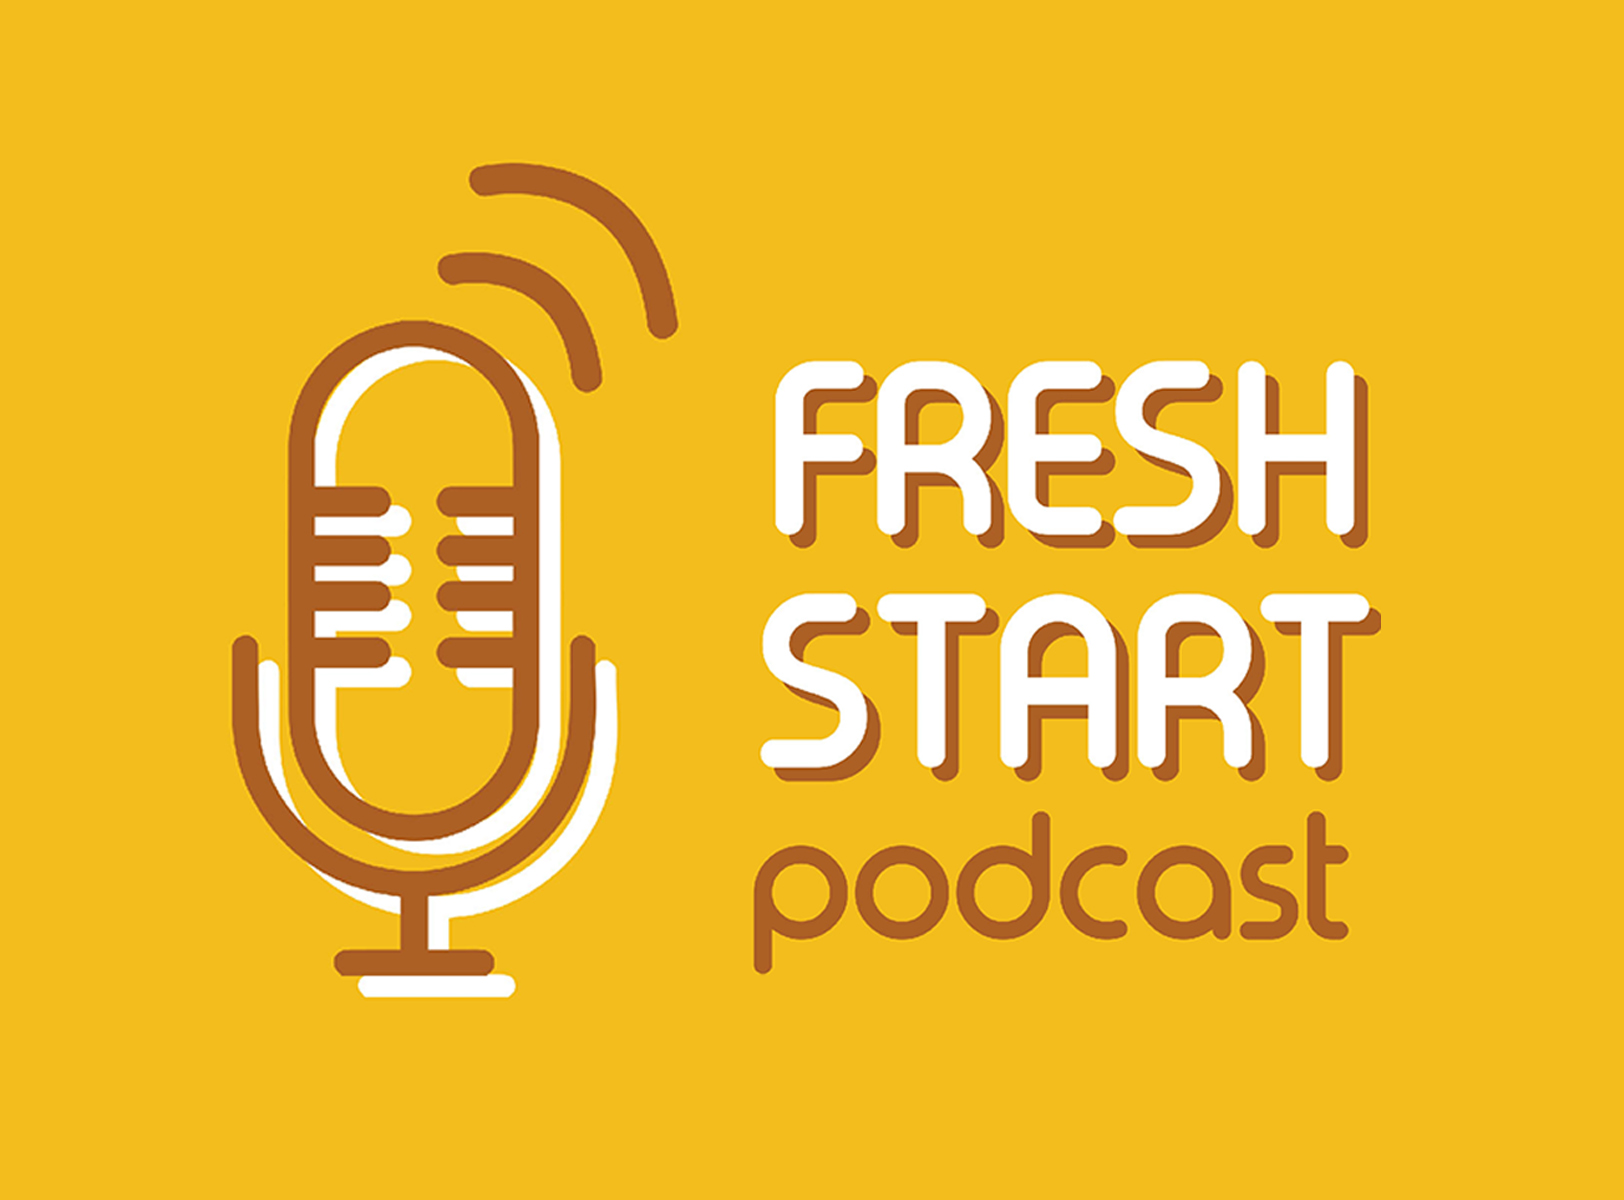 Fresh Start: Podcast News (1/7/2020 Tue.)